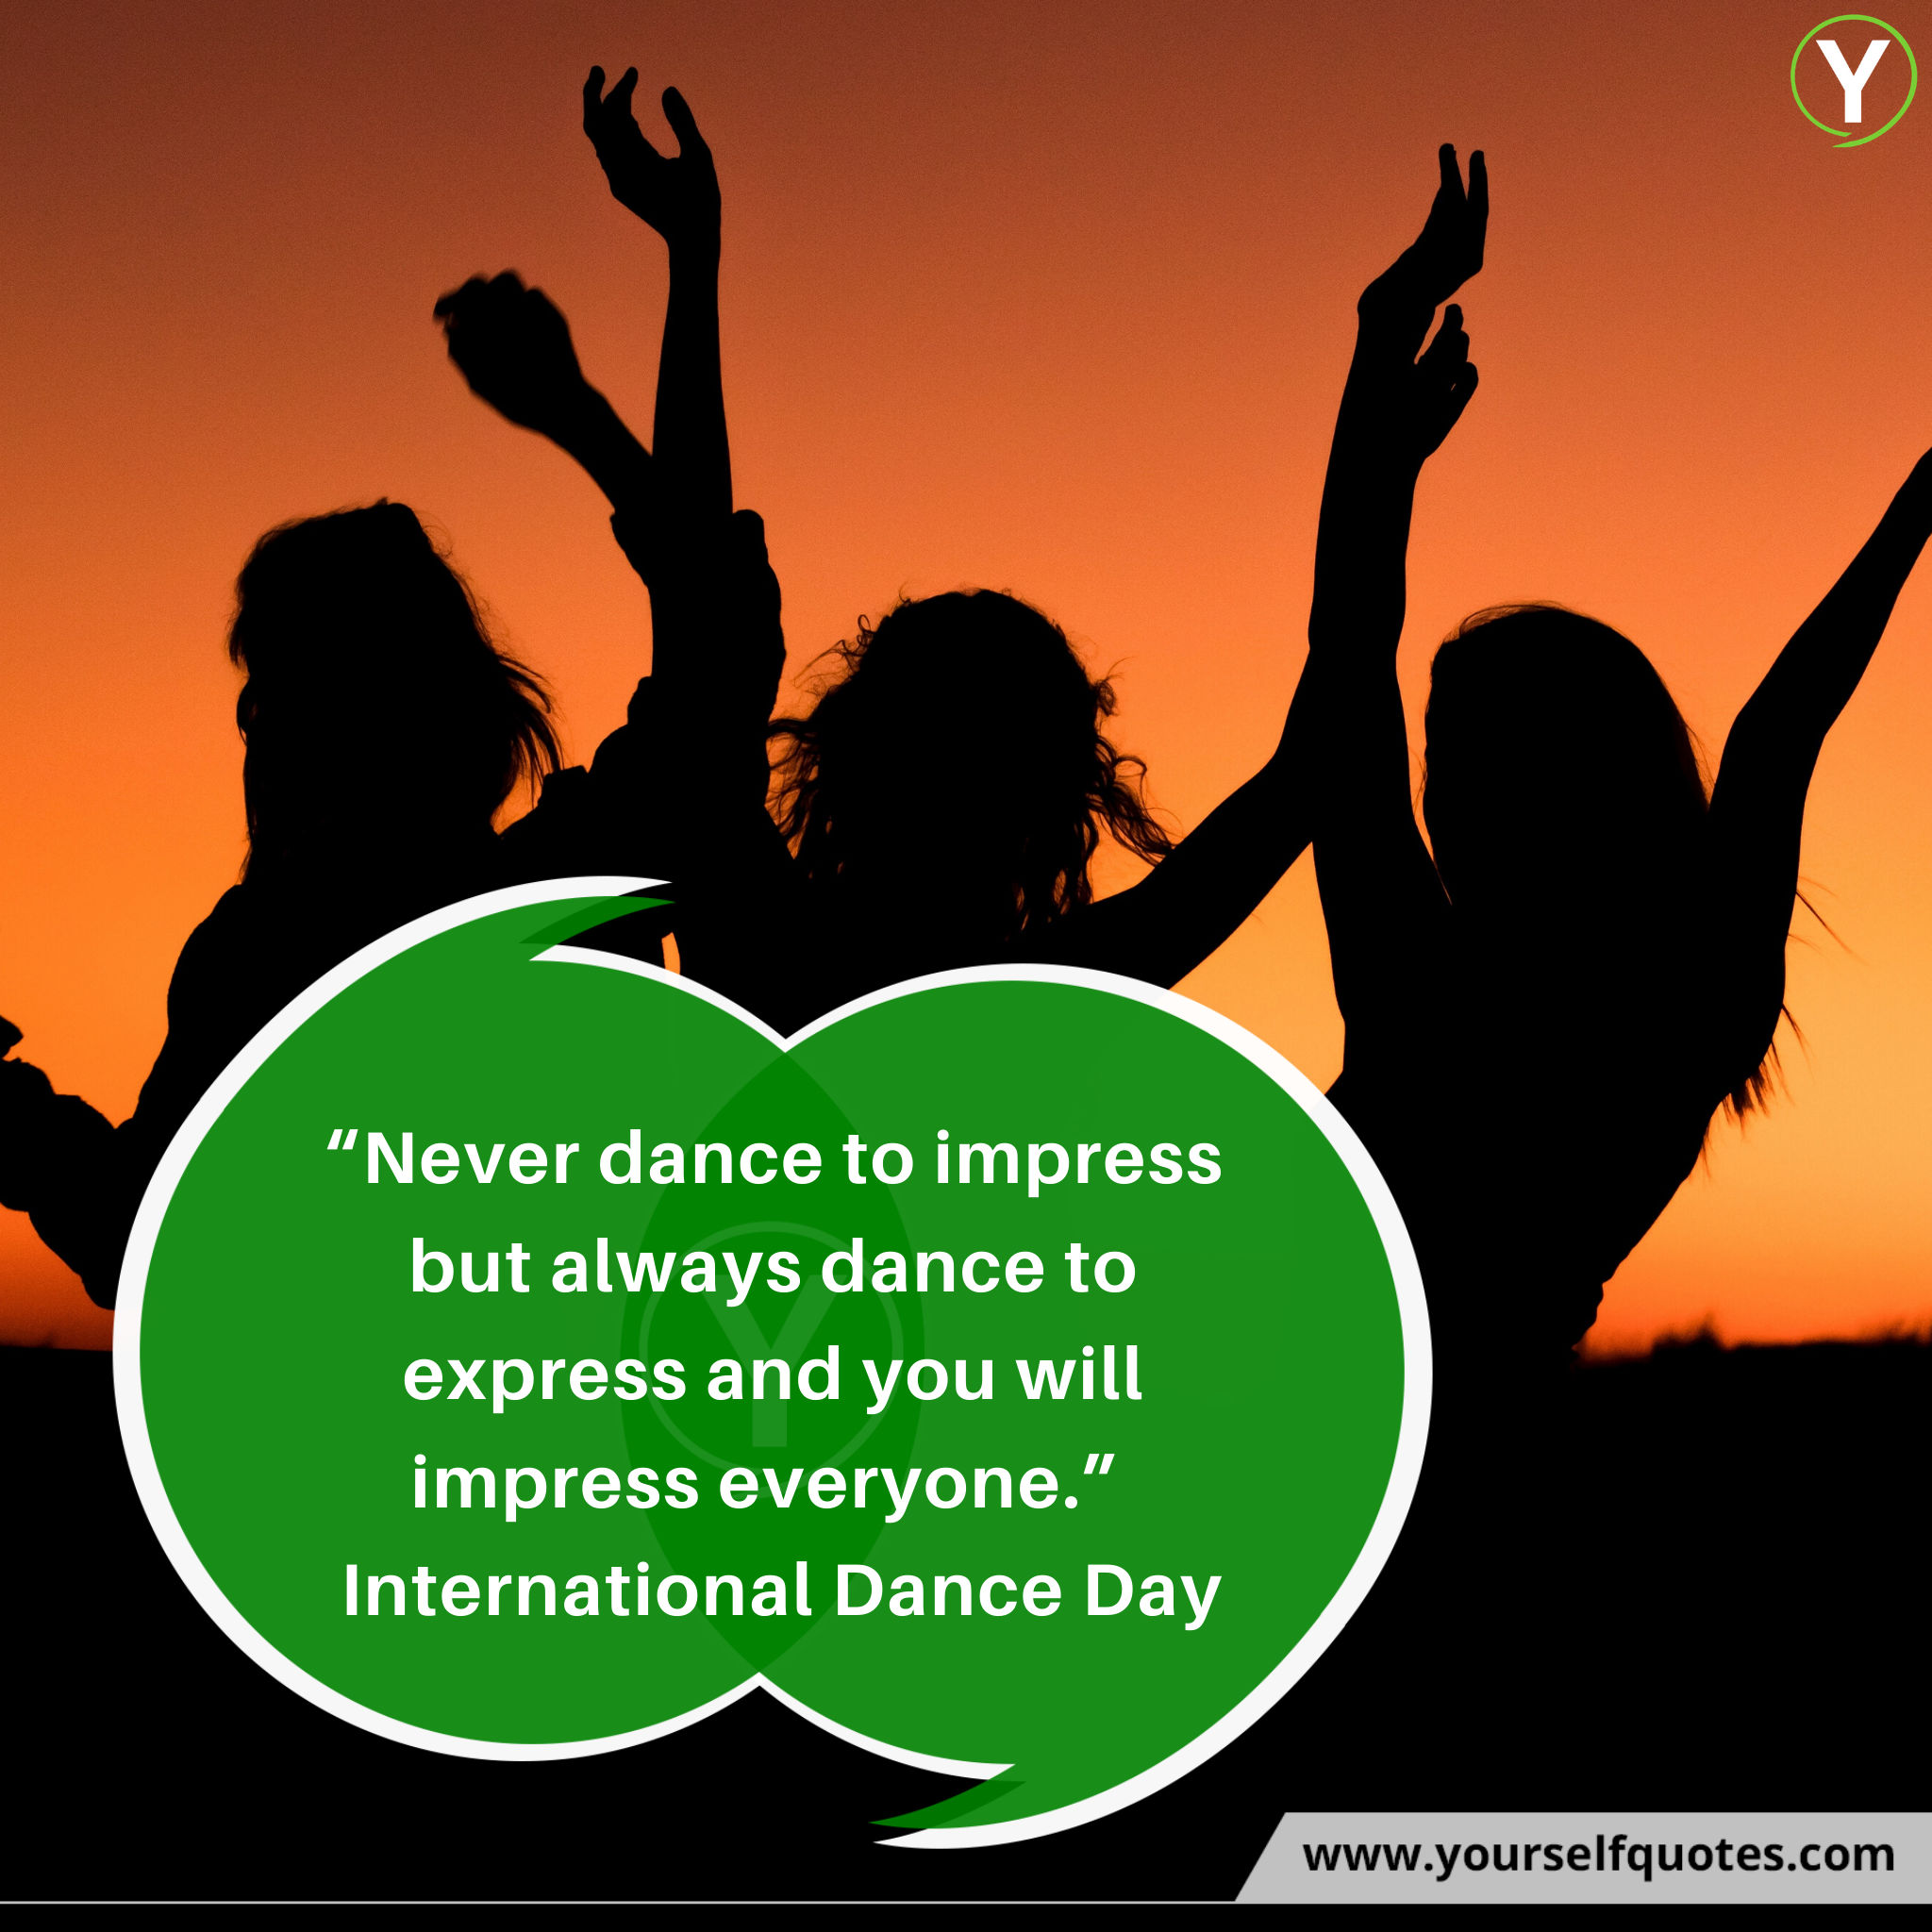 International Dance Day Quotes Images